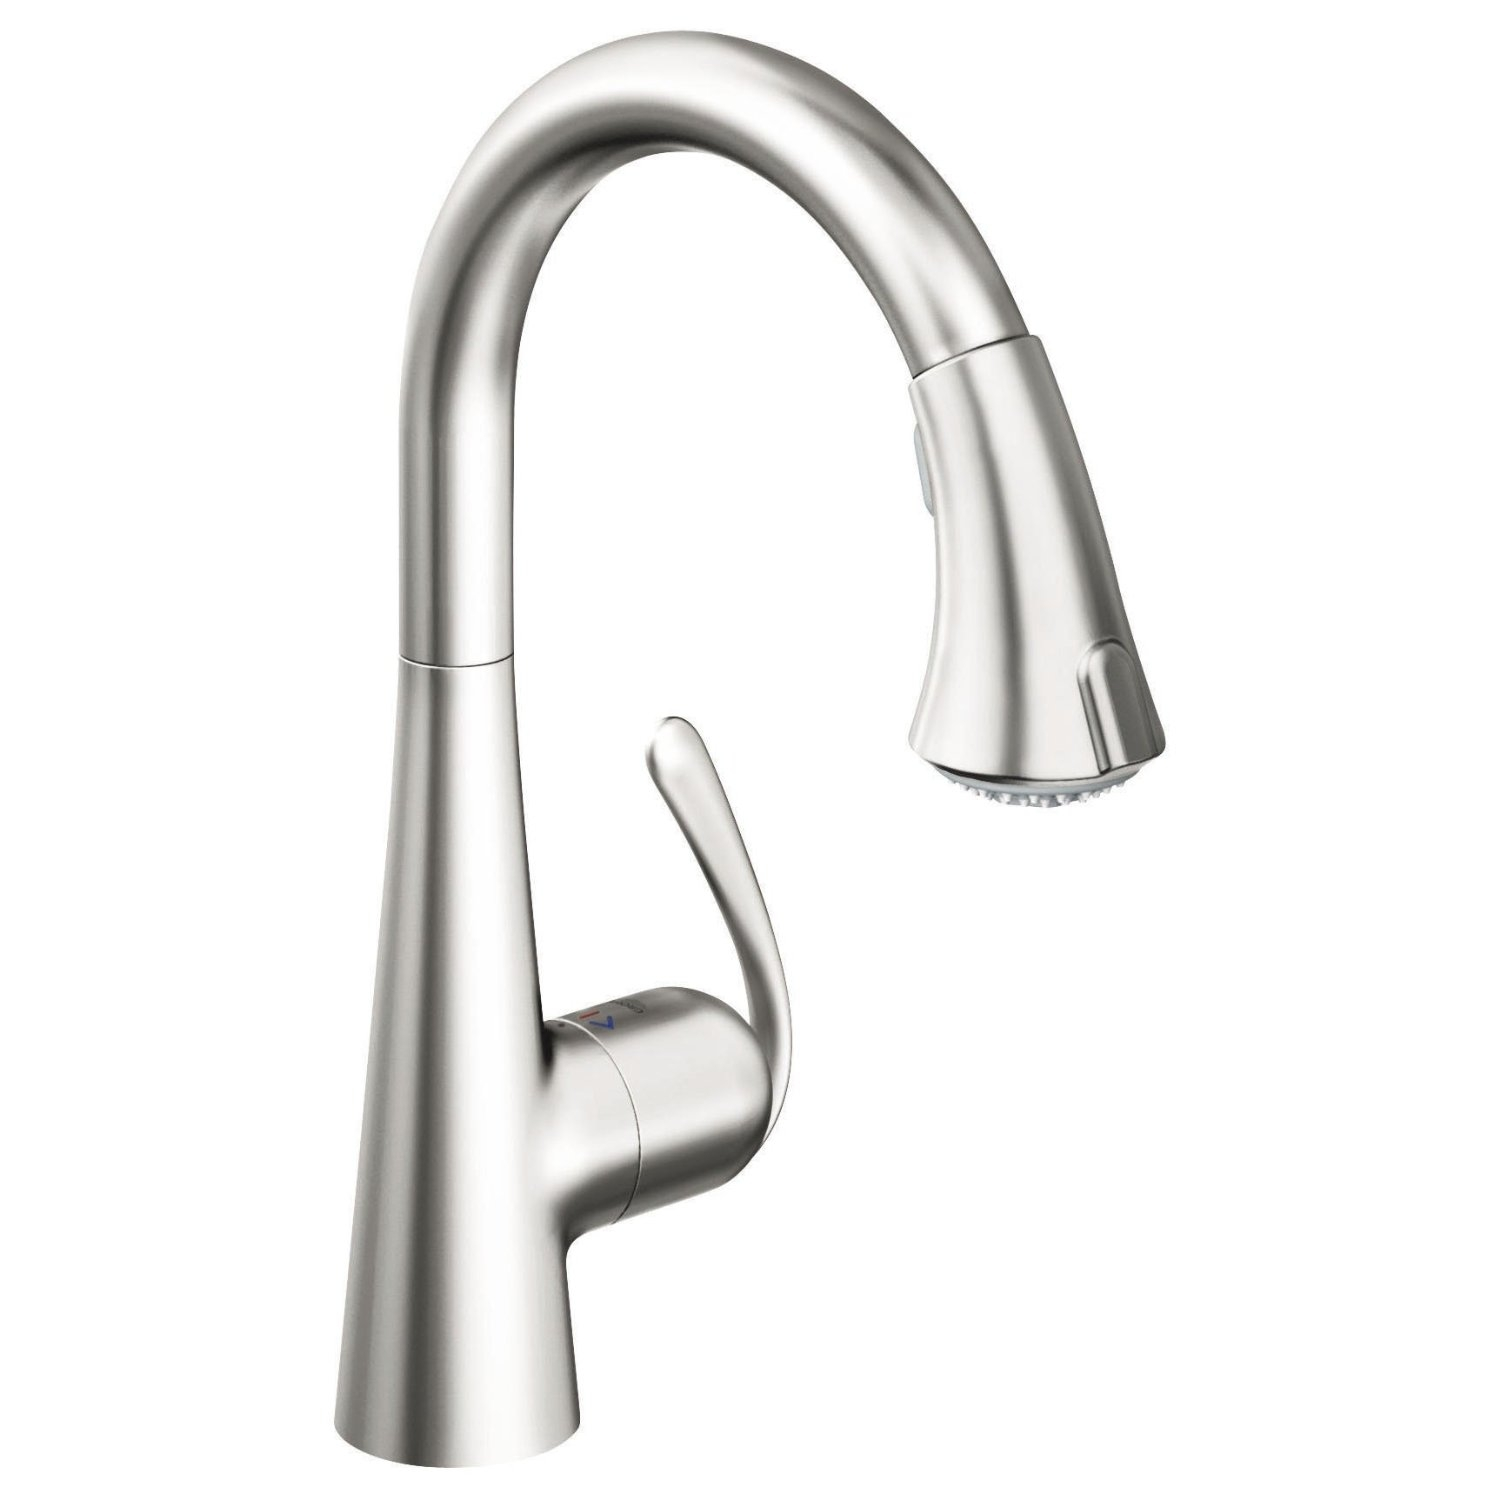 Ideas, grohe 33 759 sdo ladylux plus pull out kitchen faucet grohe 33 759 sdo ladylux plus pull out kitchen faucet grohe kitchen faucet reviews bestfaucetshub 1500 x 1500  .